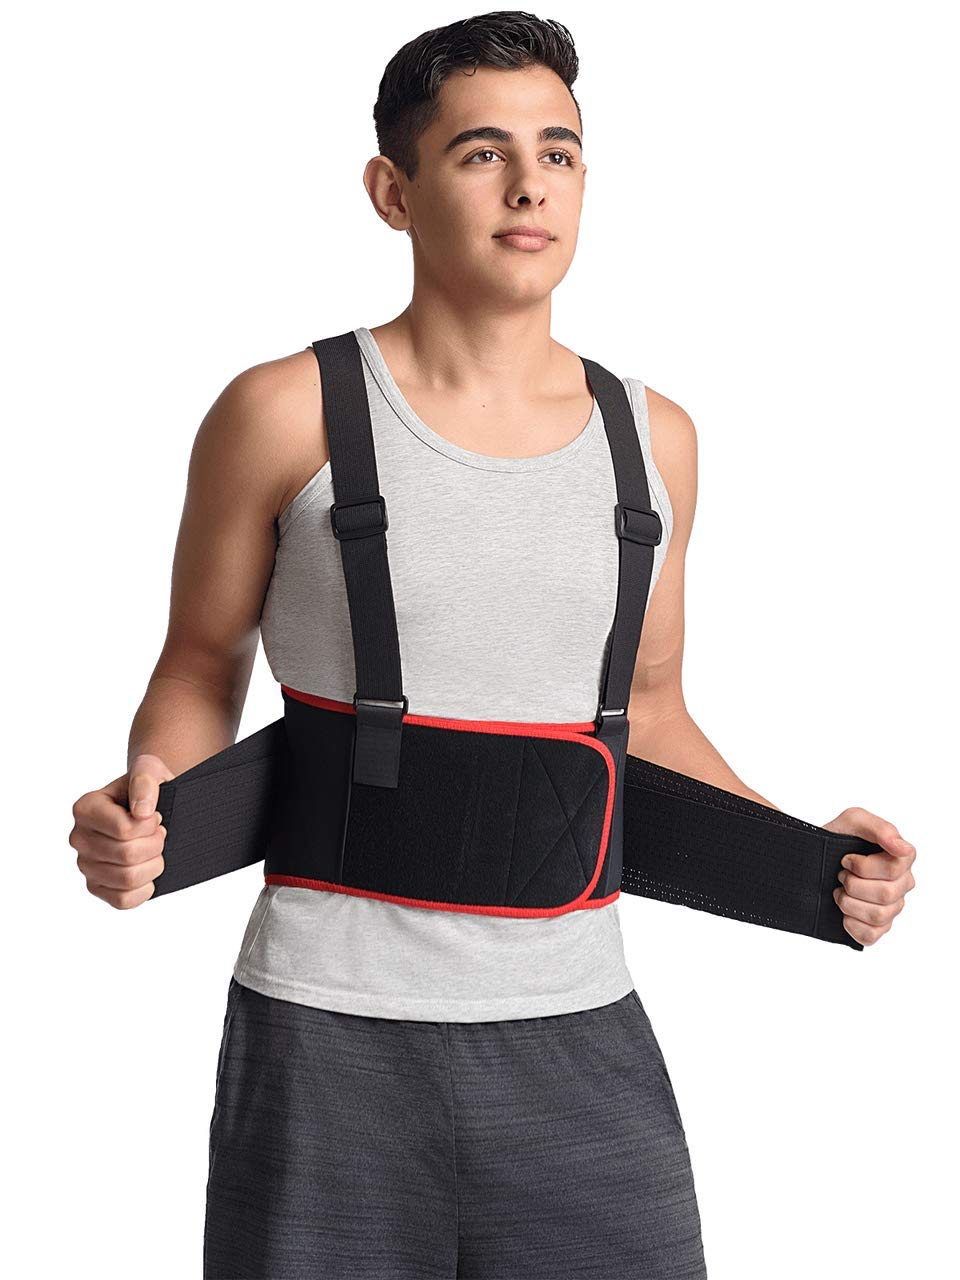 MAXAR Breathable Lower Back Support with Detachable Suspenders IBS-3000: Black Medium by Maxar